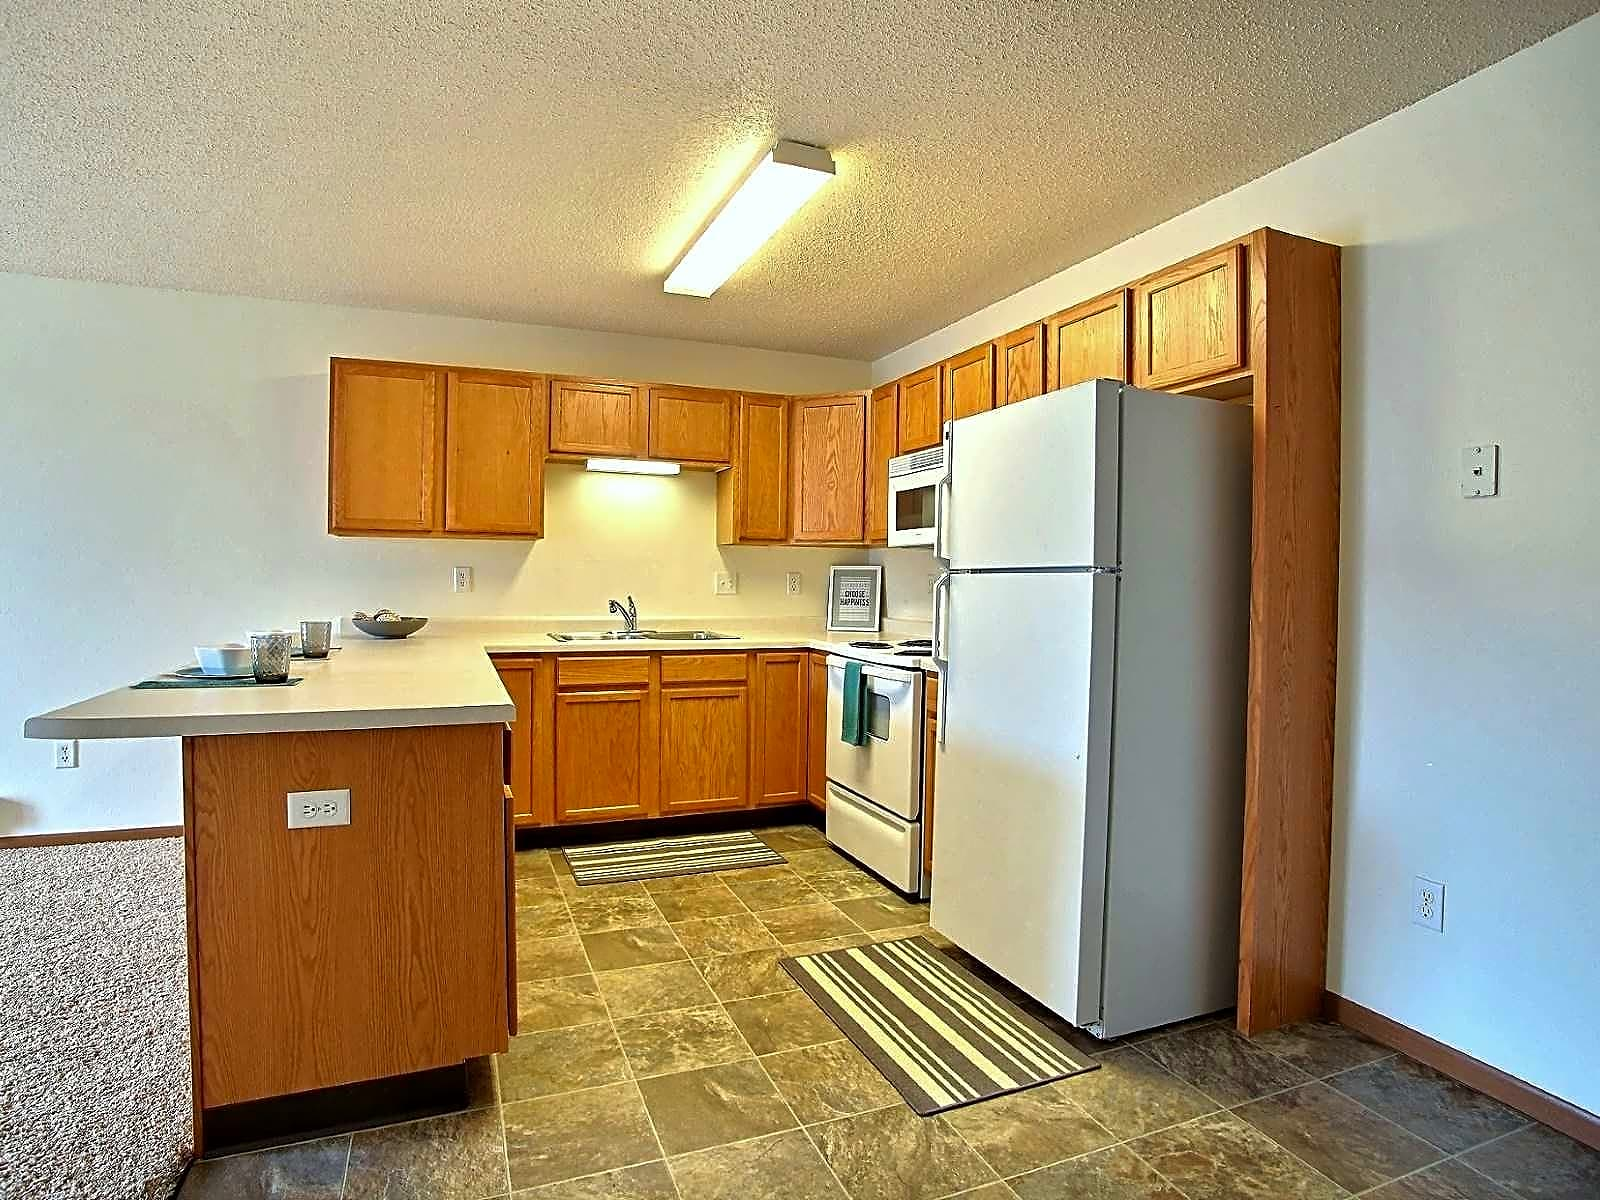 2 bedroom - Island style kitchen